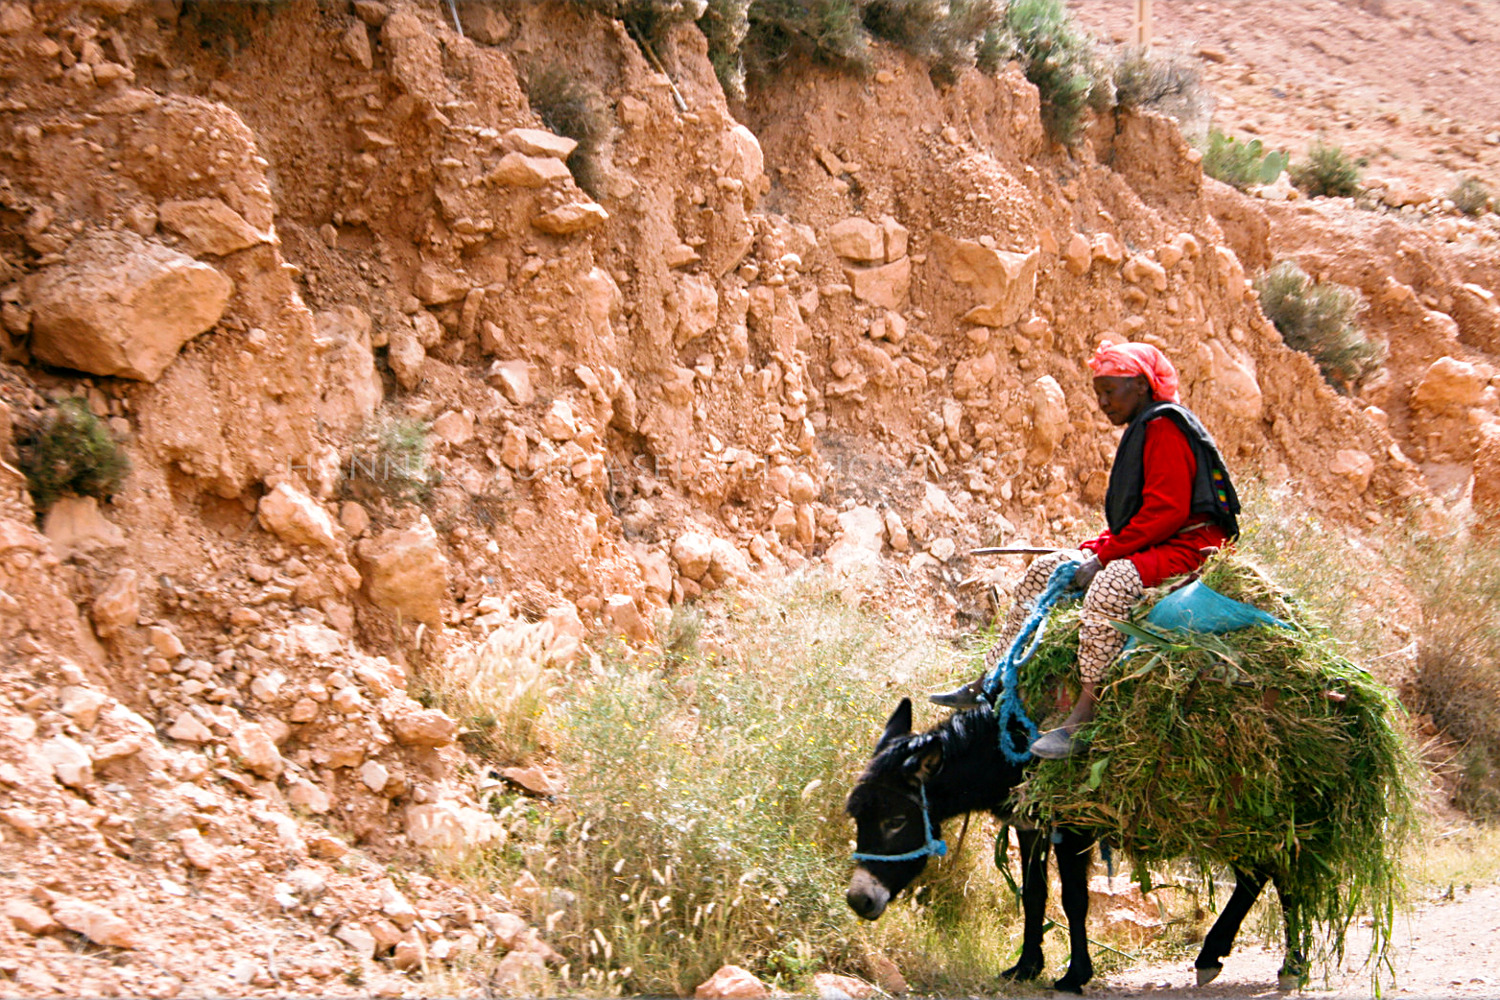 A woman on a donkey in rural Morocco. Tips for Taking Better Pictures from a Moving Vehicle